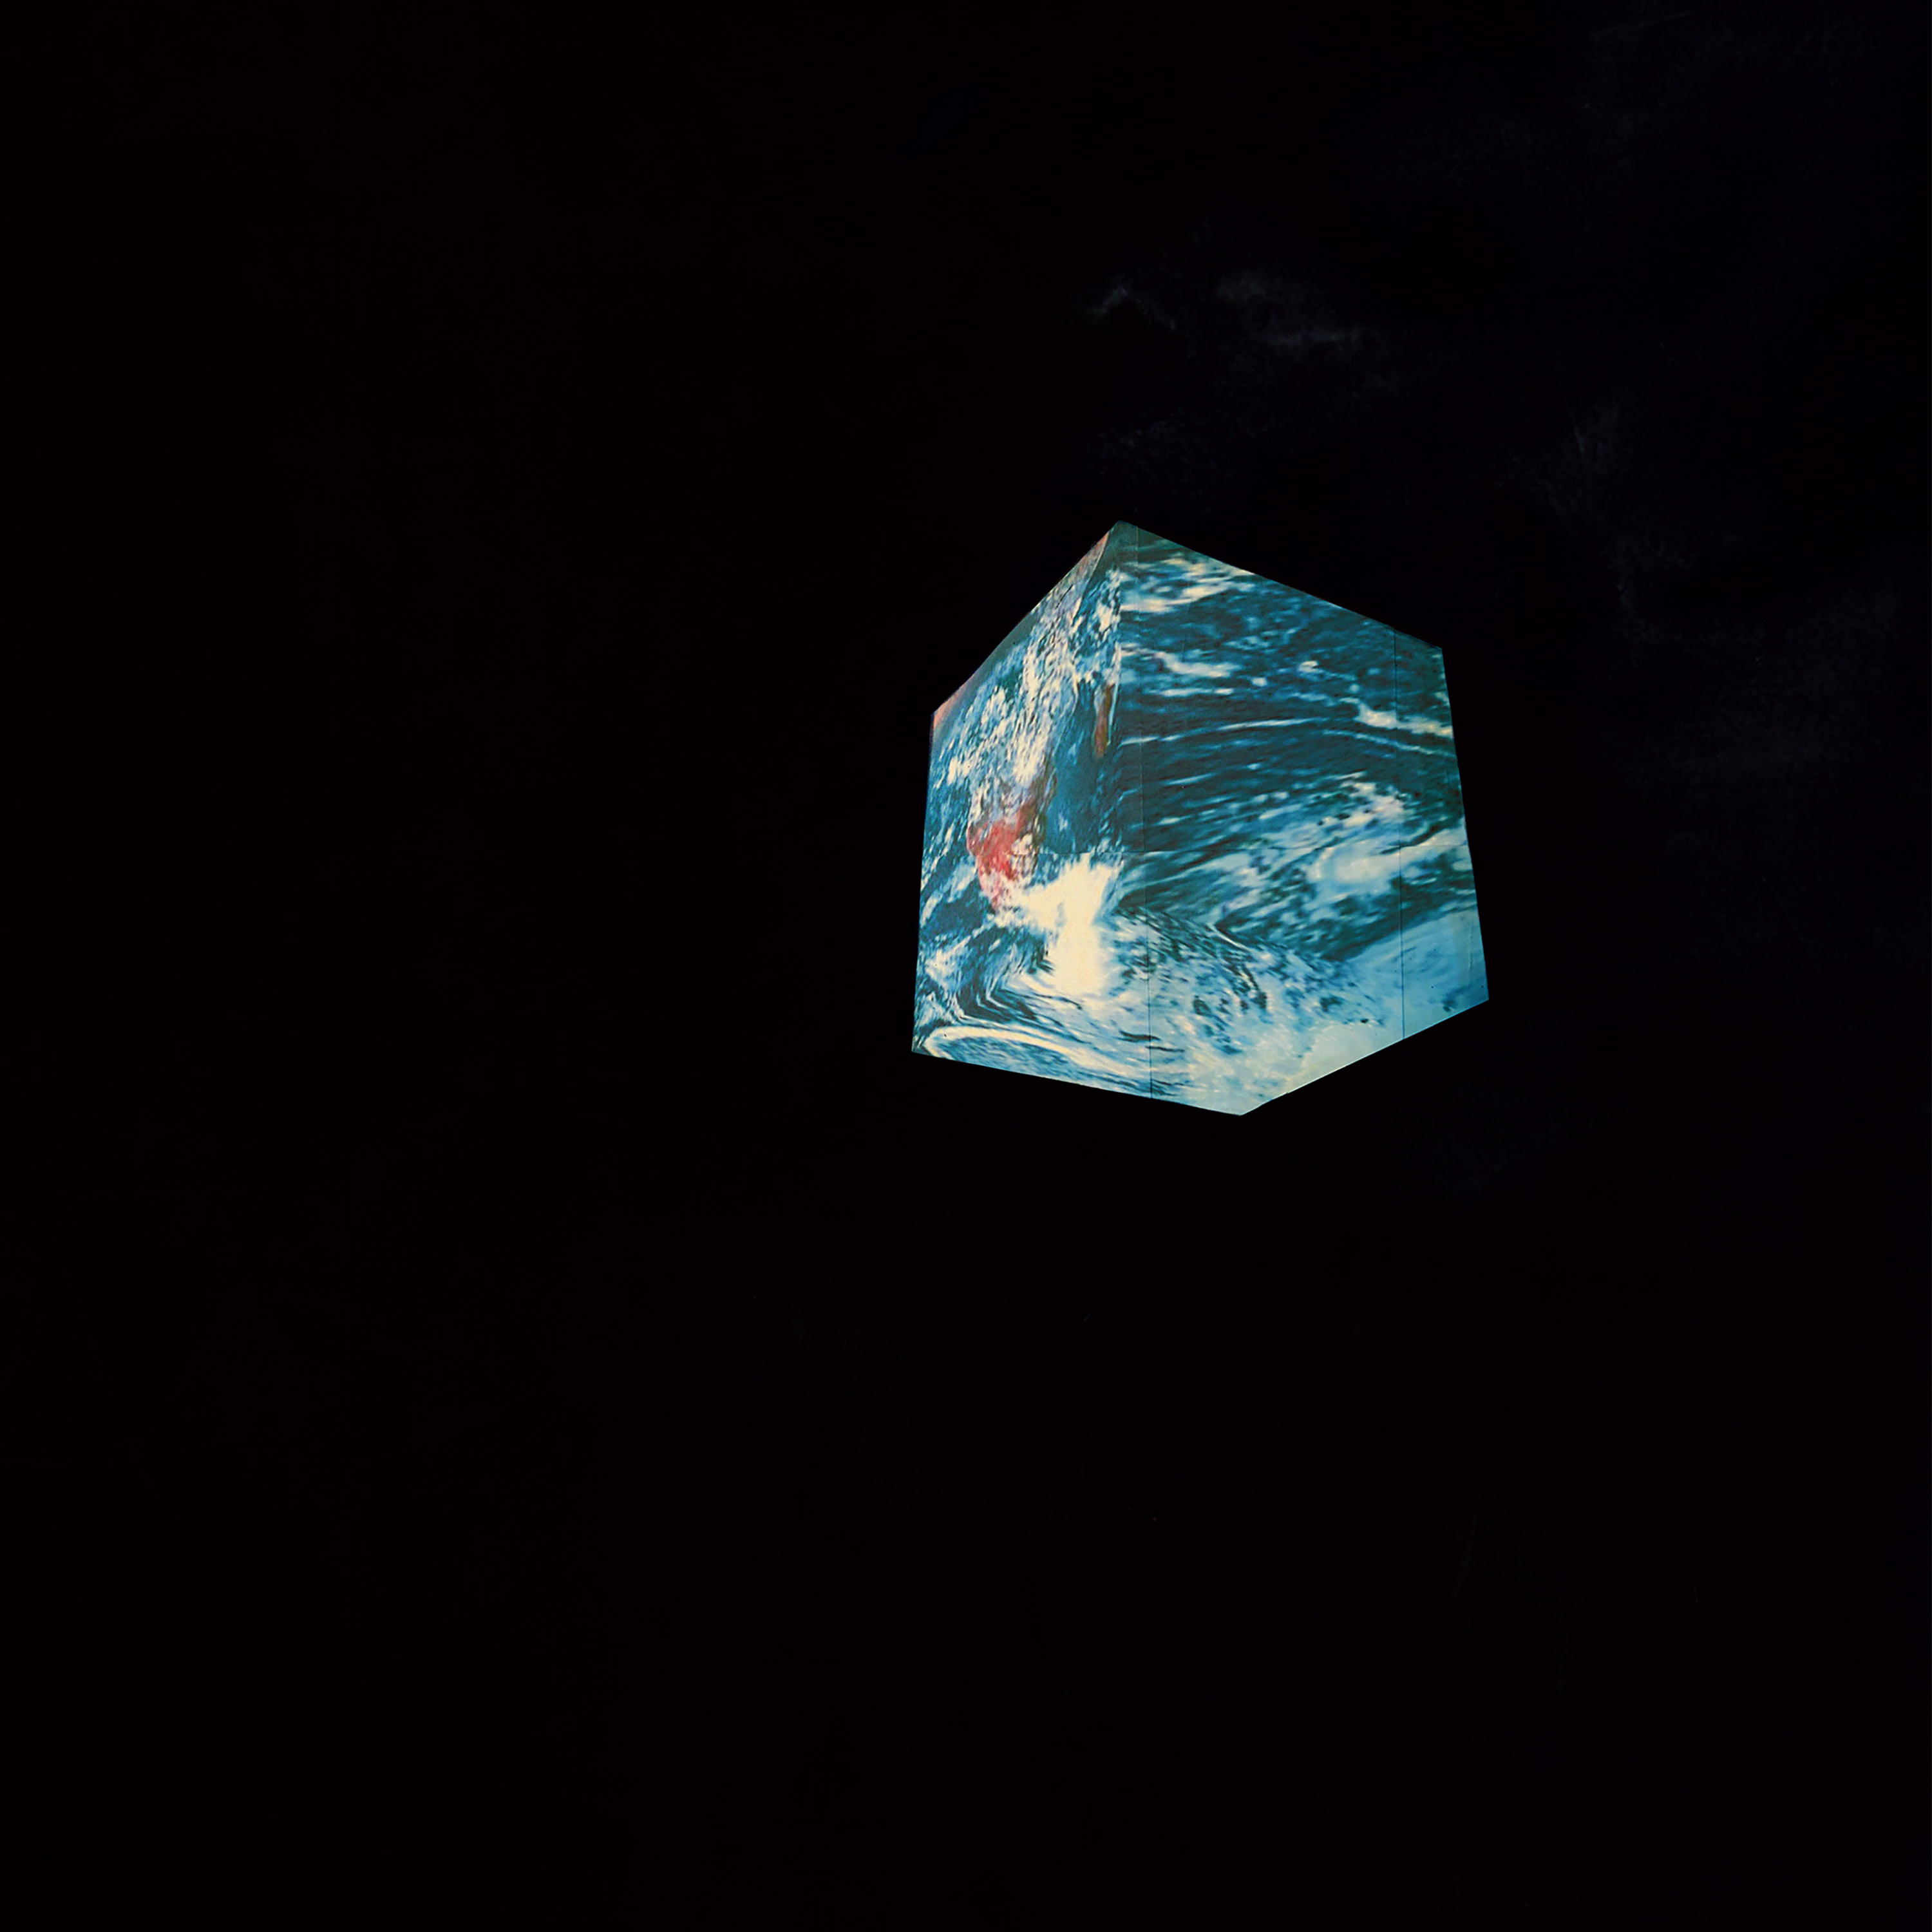 Tim Hecker to release Konoyo companion LP, Anoyo